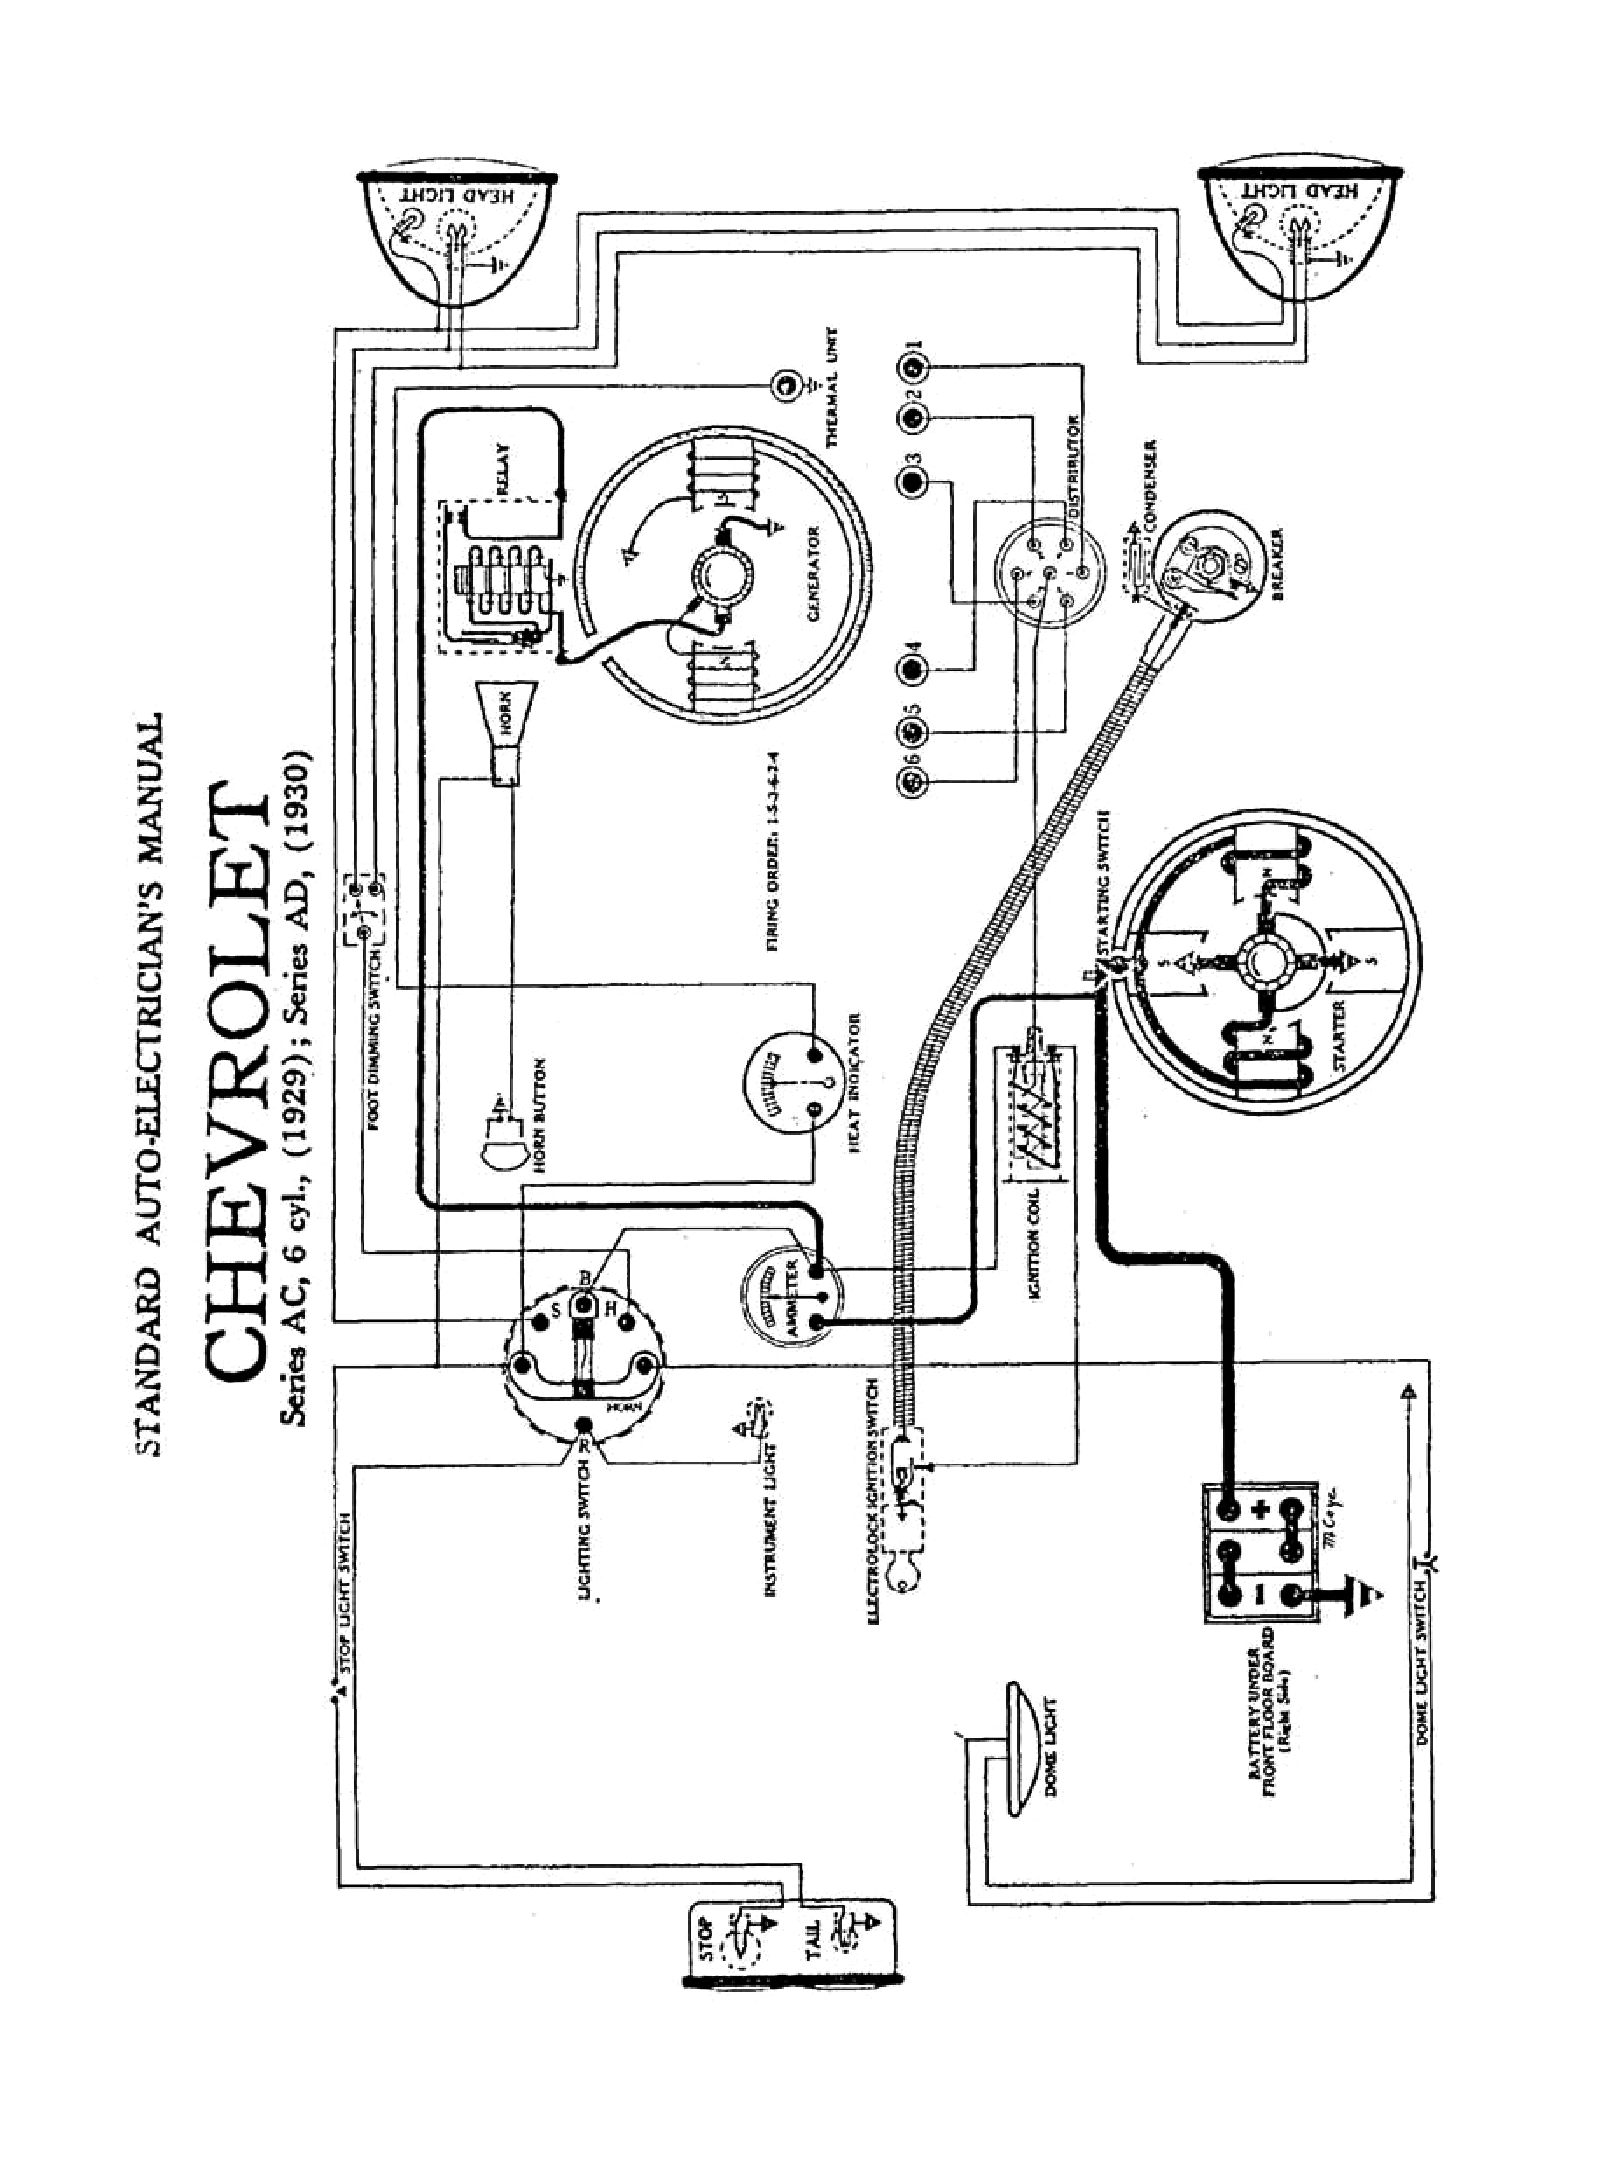 chevy wiring diagrams rh chevy oldcarmanualproject com 1950 chevy pickup wiring diagram 1950 chevy pickup wiring diagram